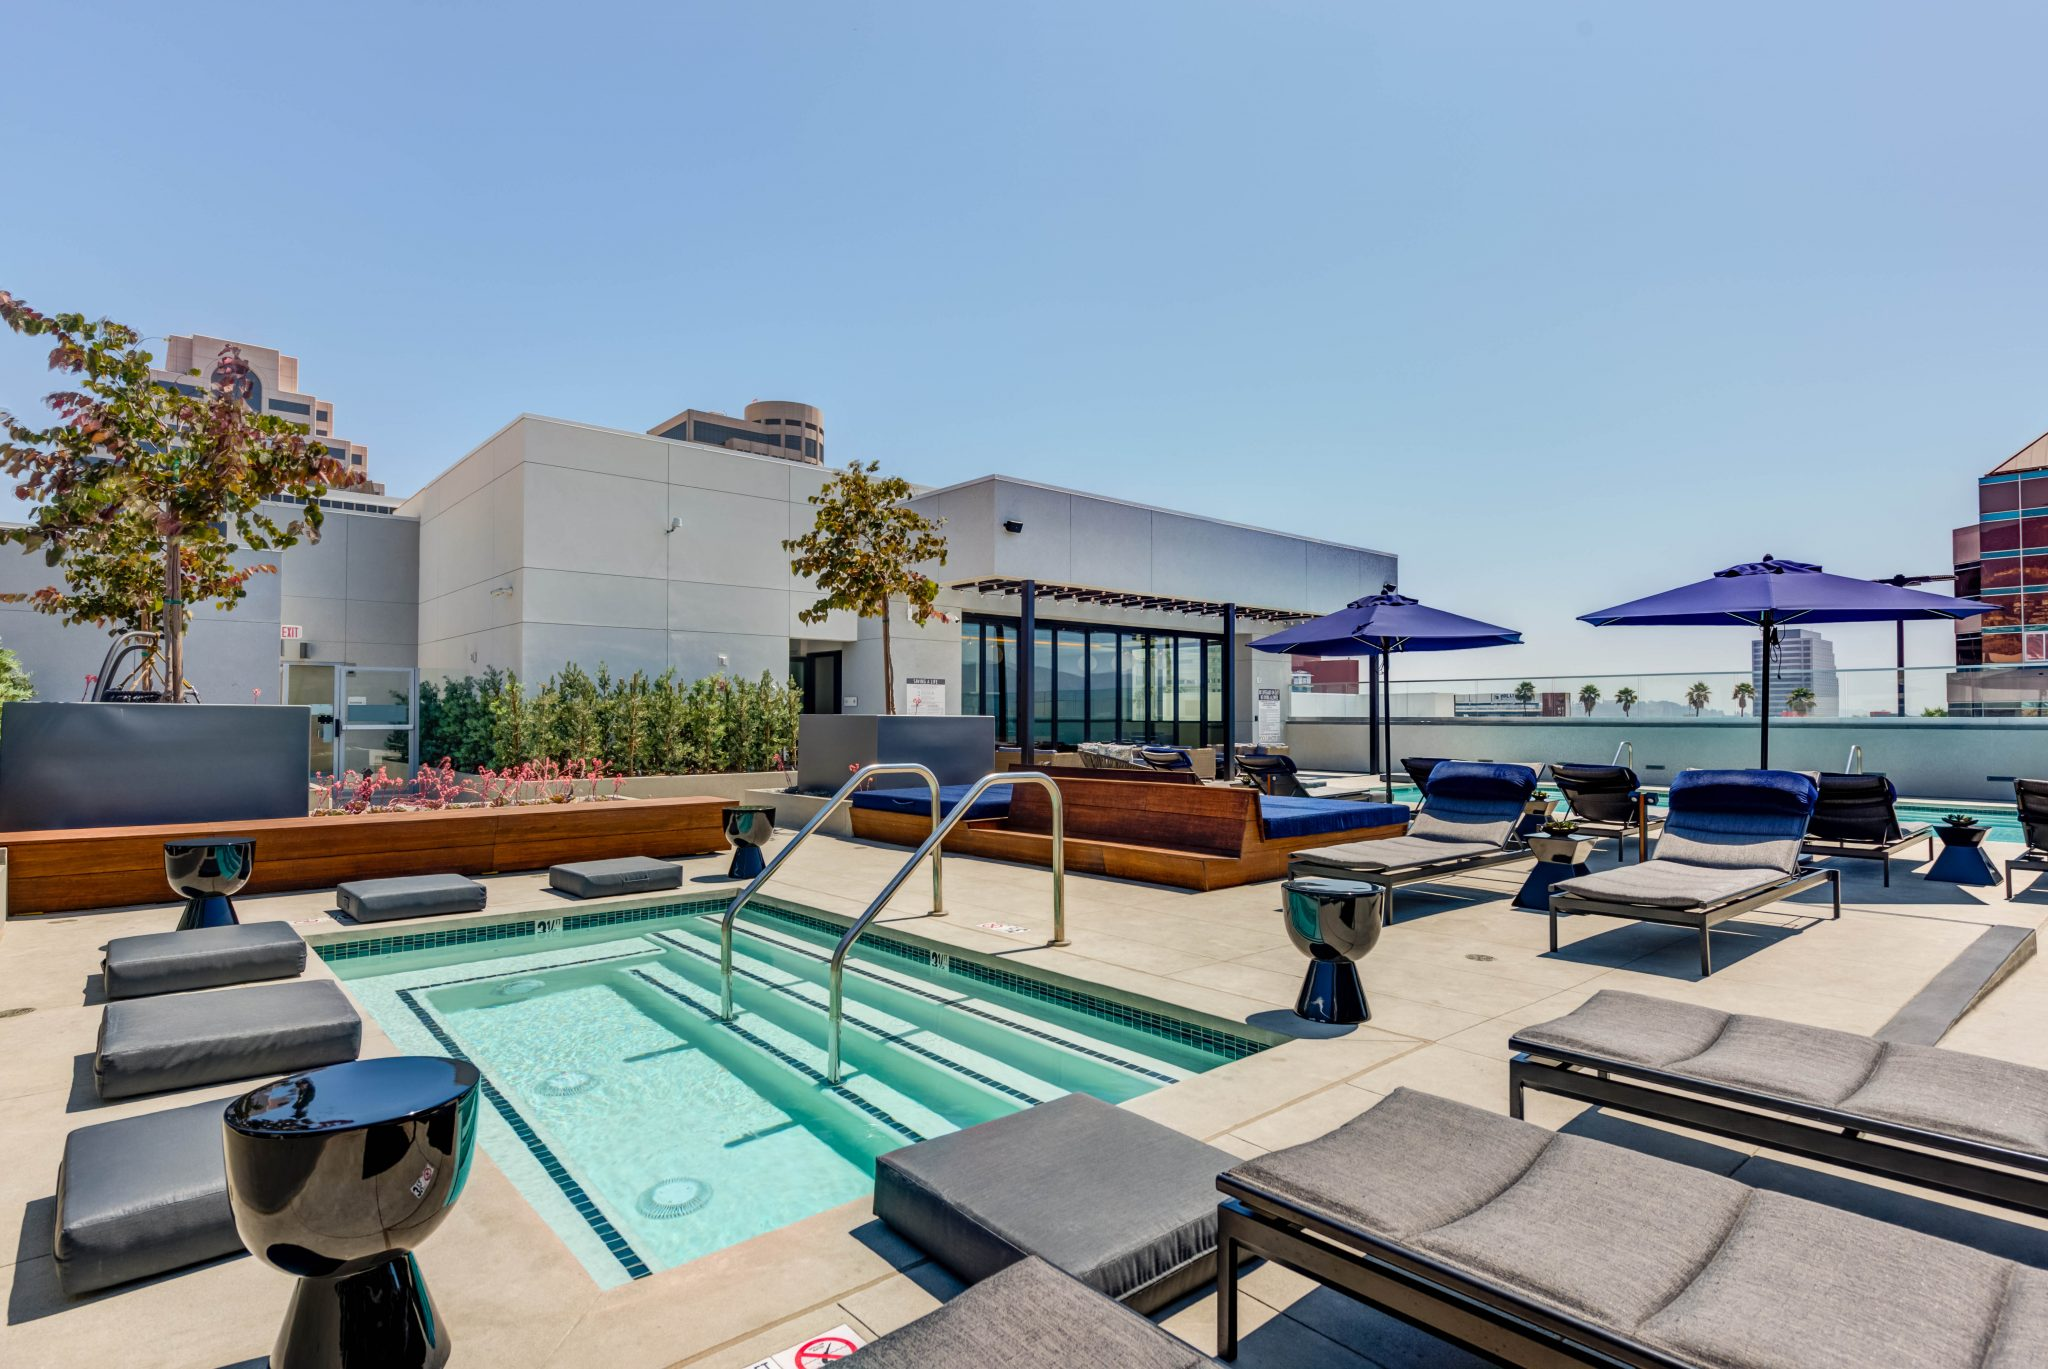 Exterior of rooftop spa surrounded by lounges, seating pads, and wooden benches